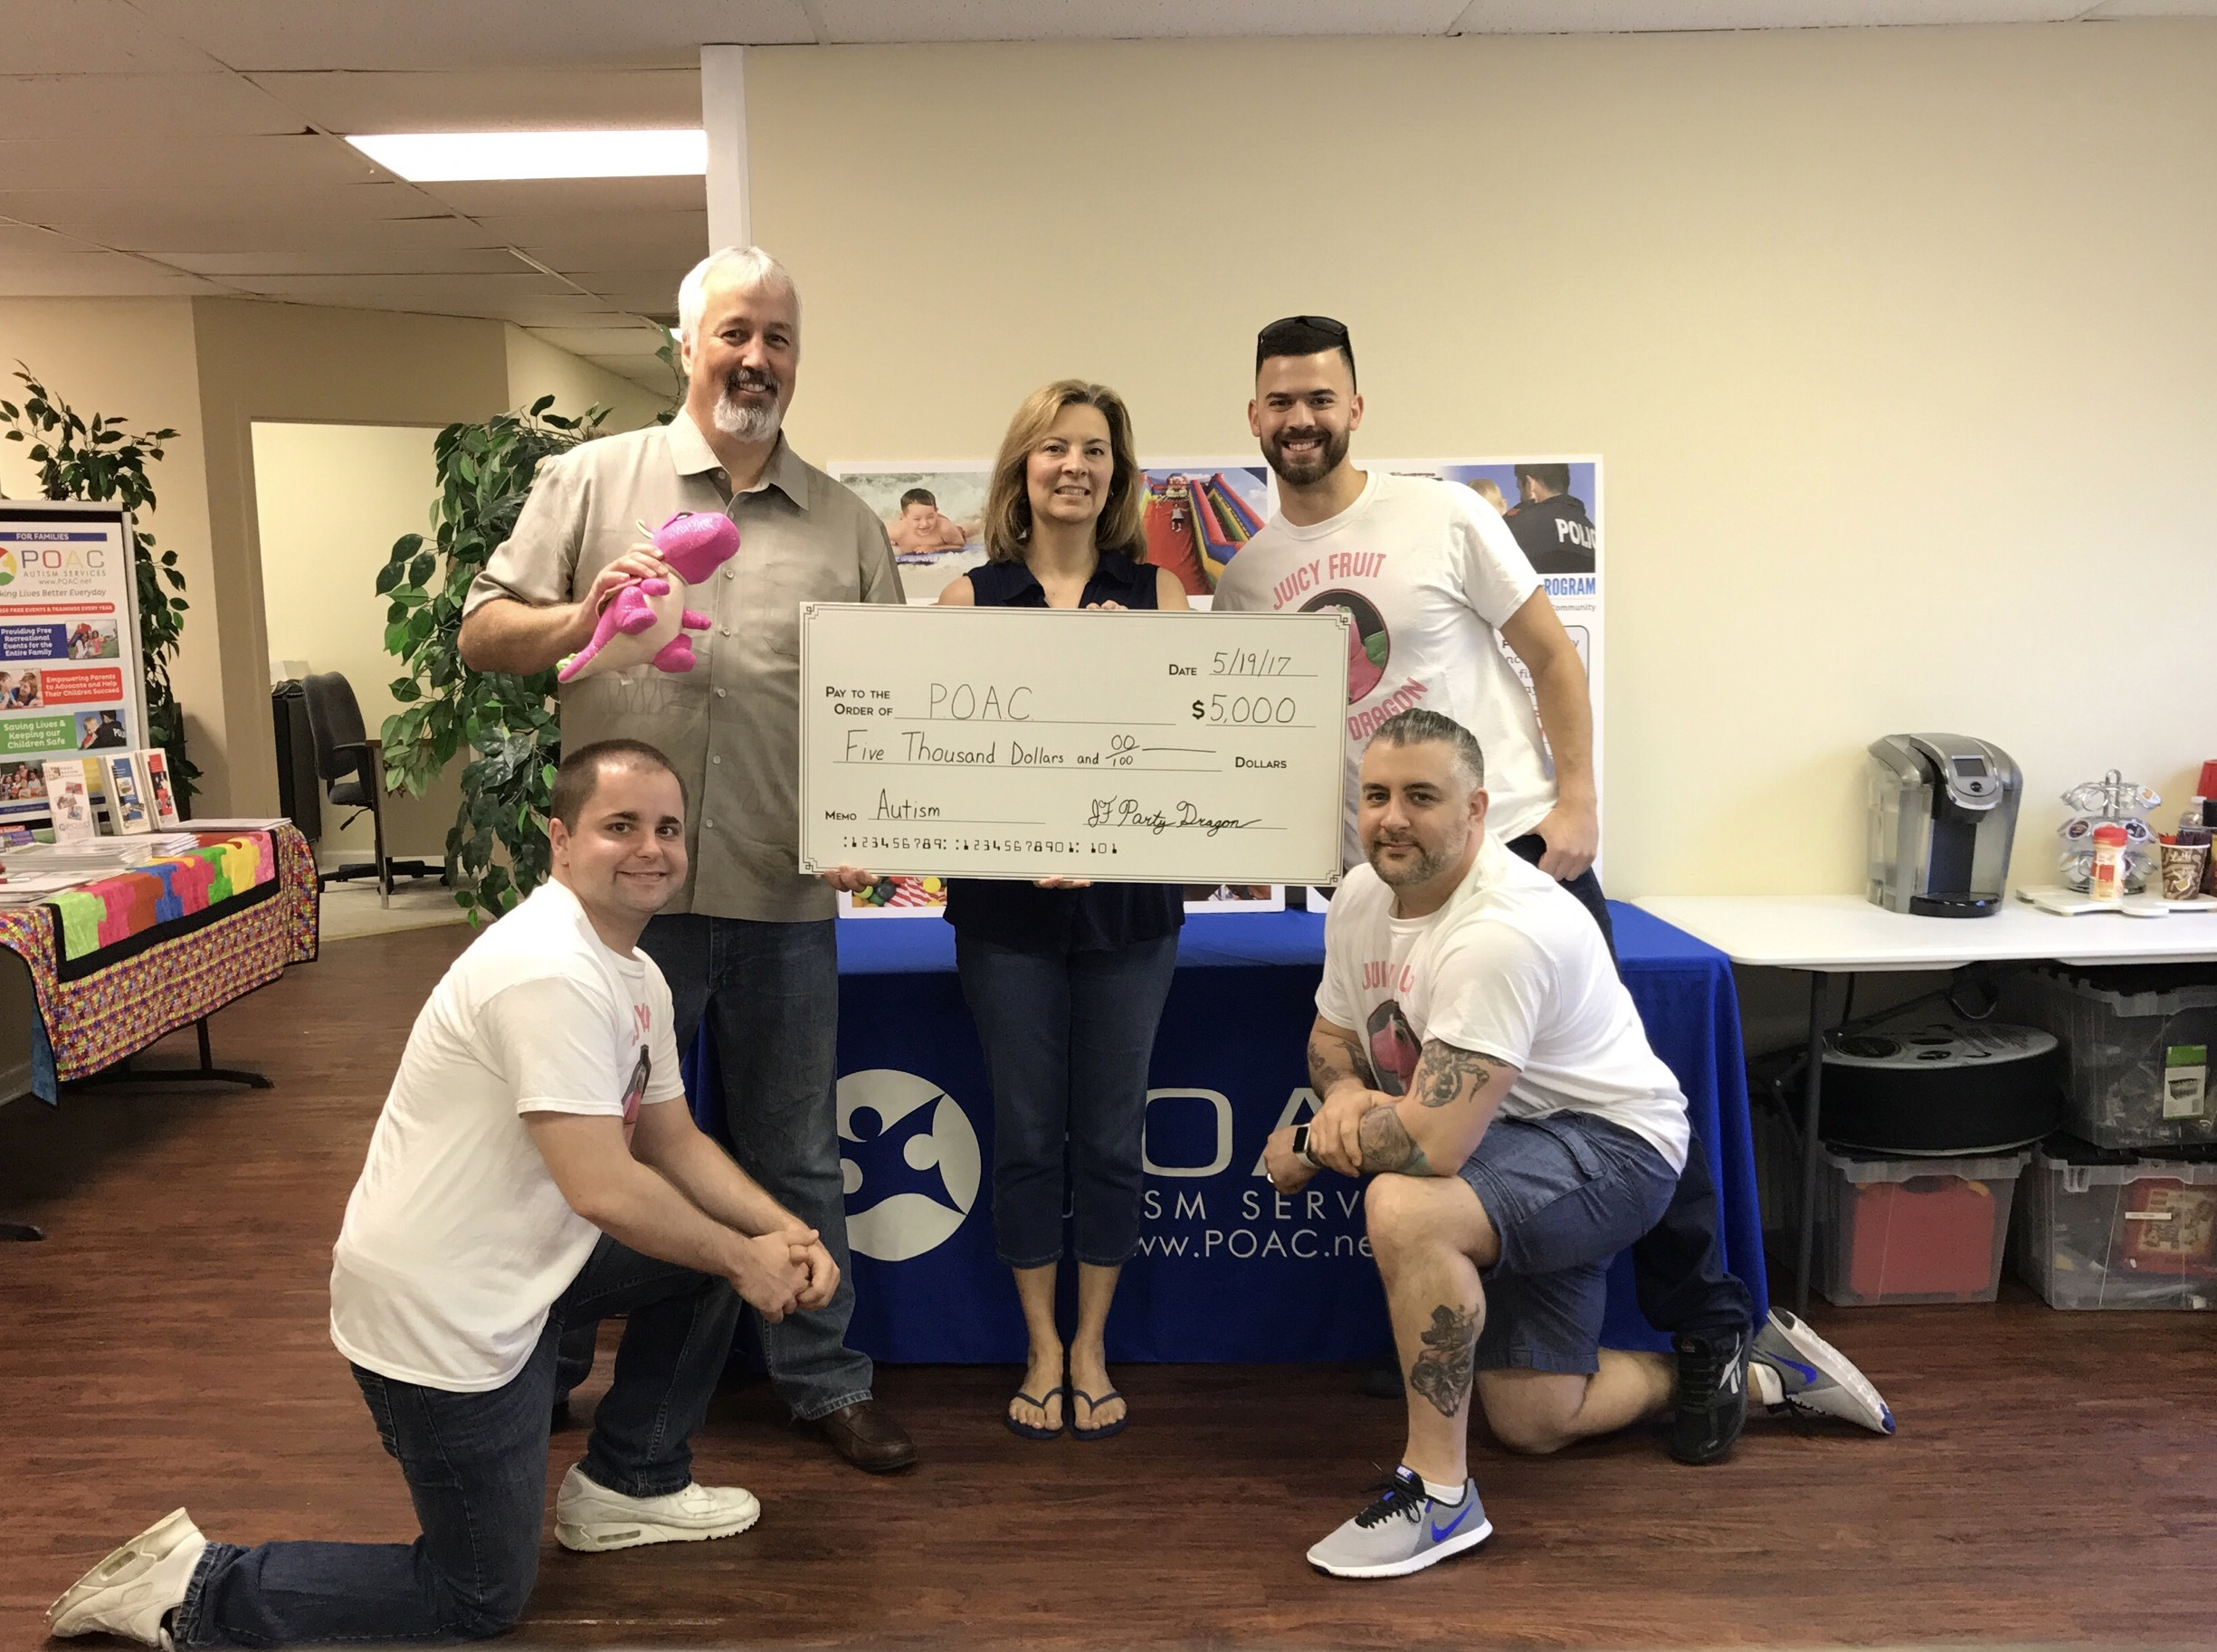 Our donation to POAC in Brick, NJ 5-19-17